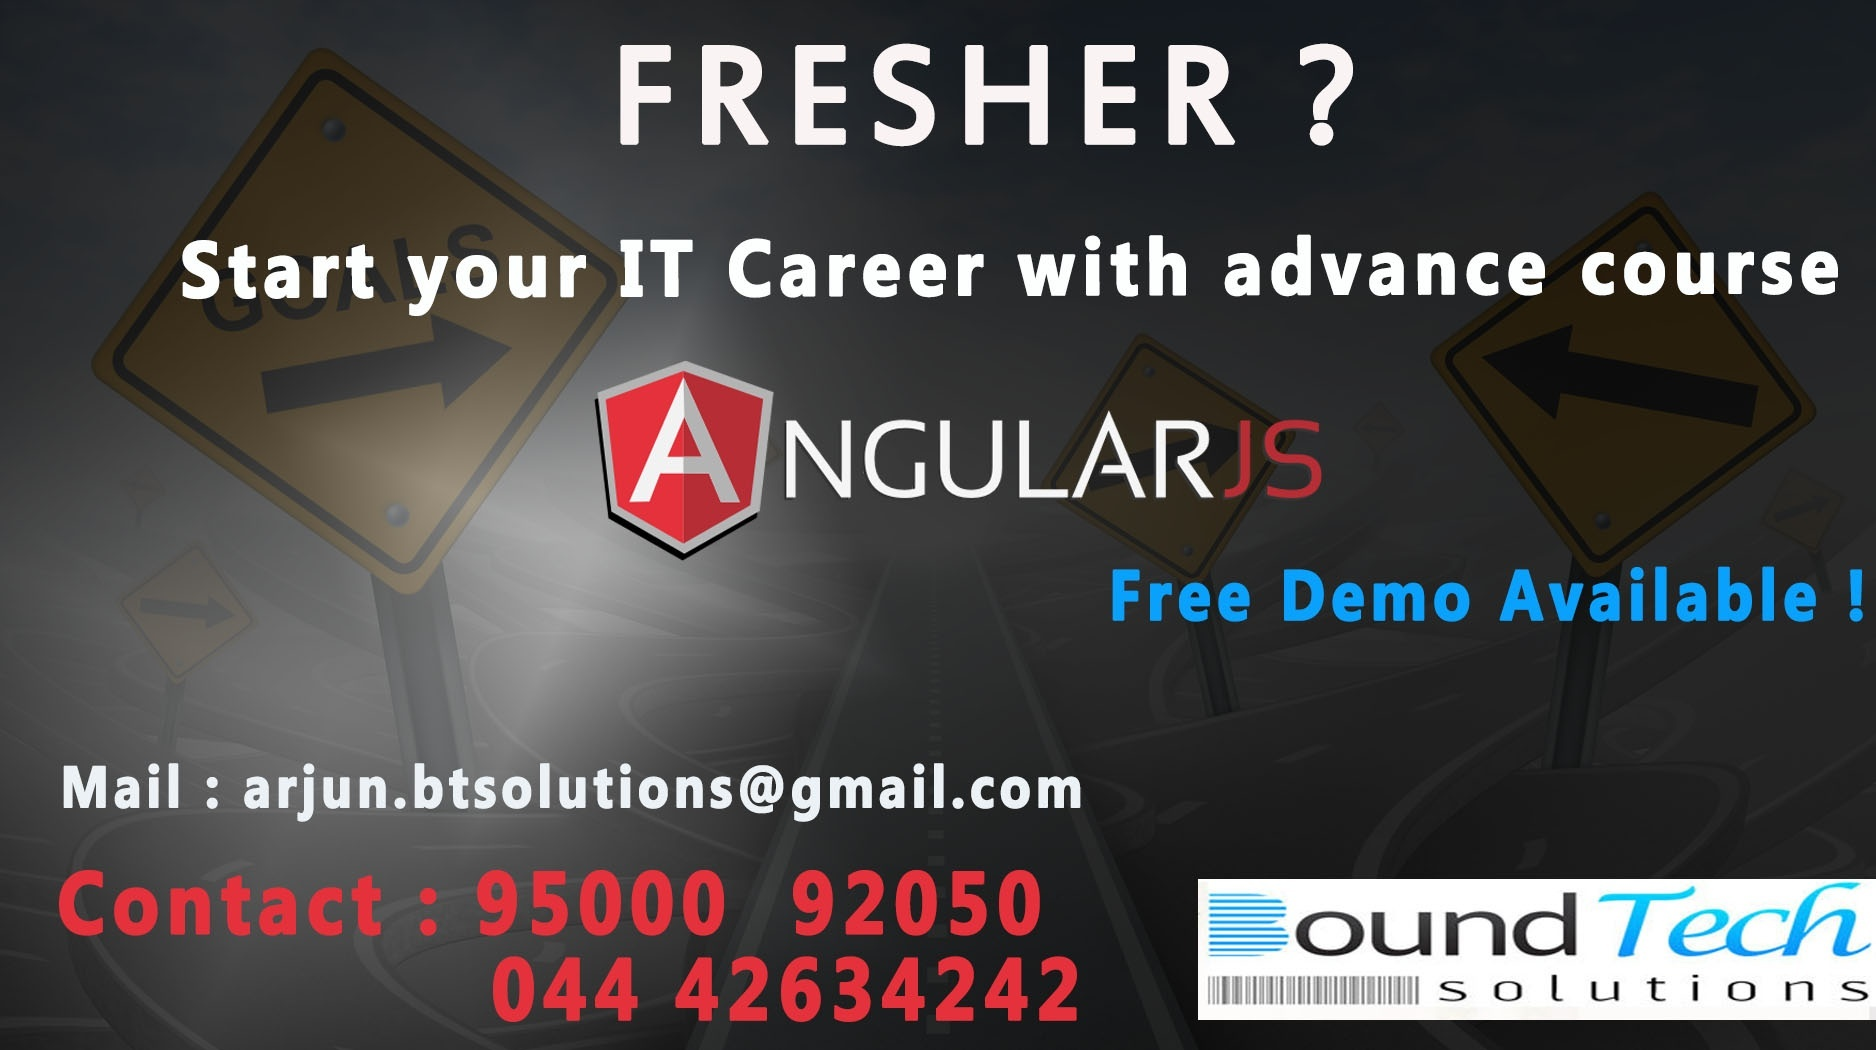 Which is the best institute for AngularJS in Hyderabad? - Quora